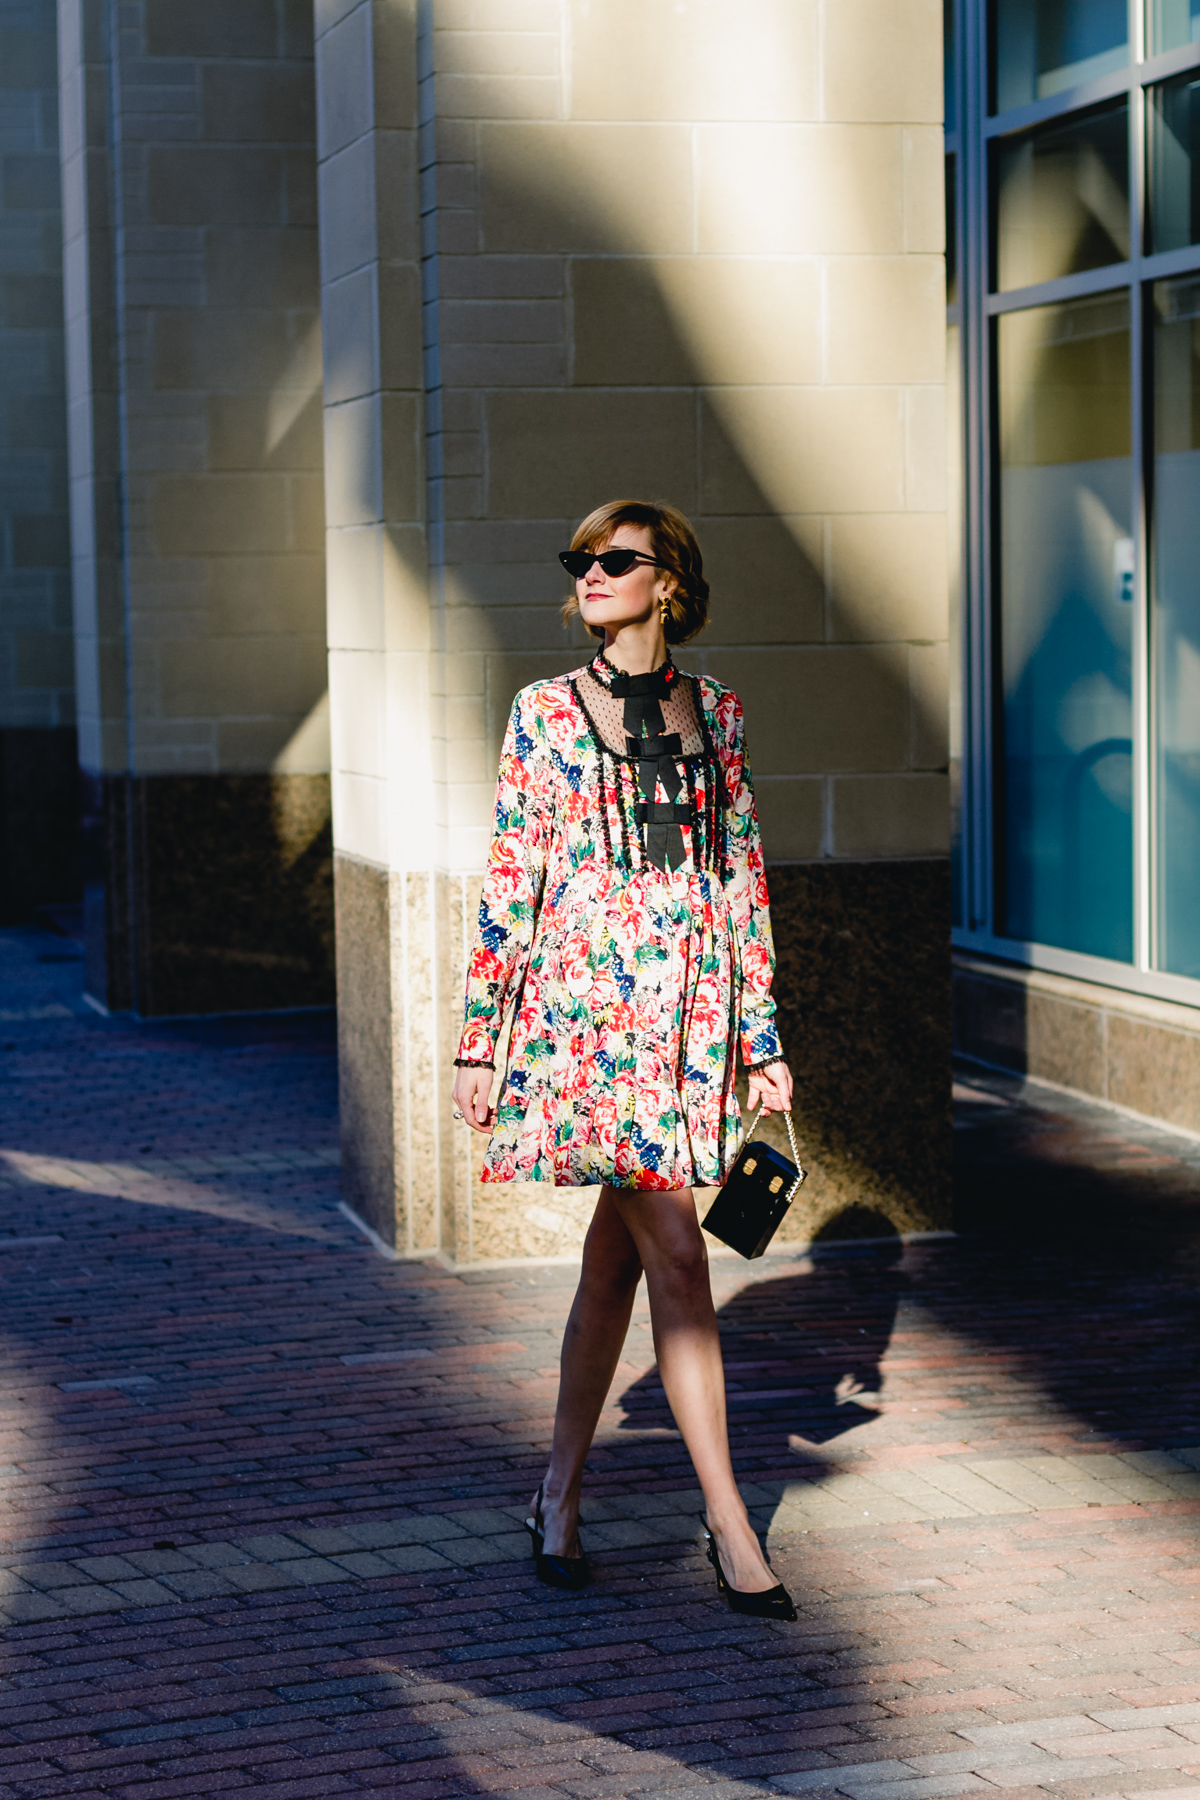 Ganni dress, Zara pumps, and vintage bag